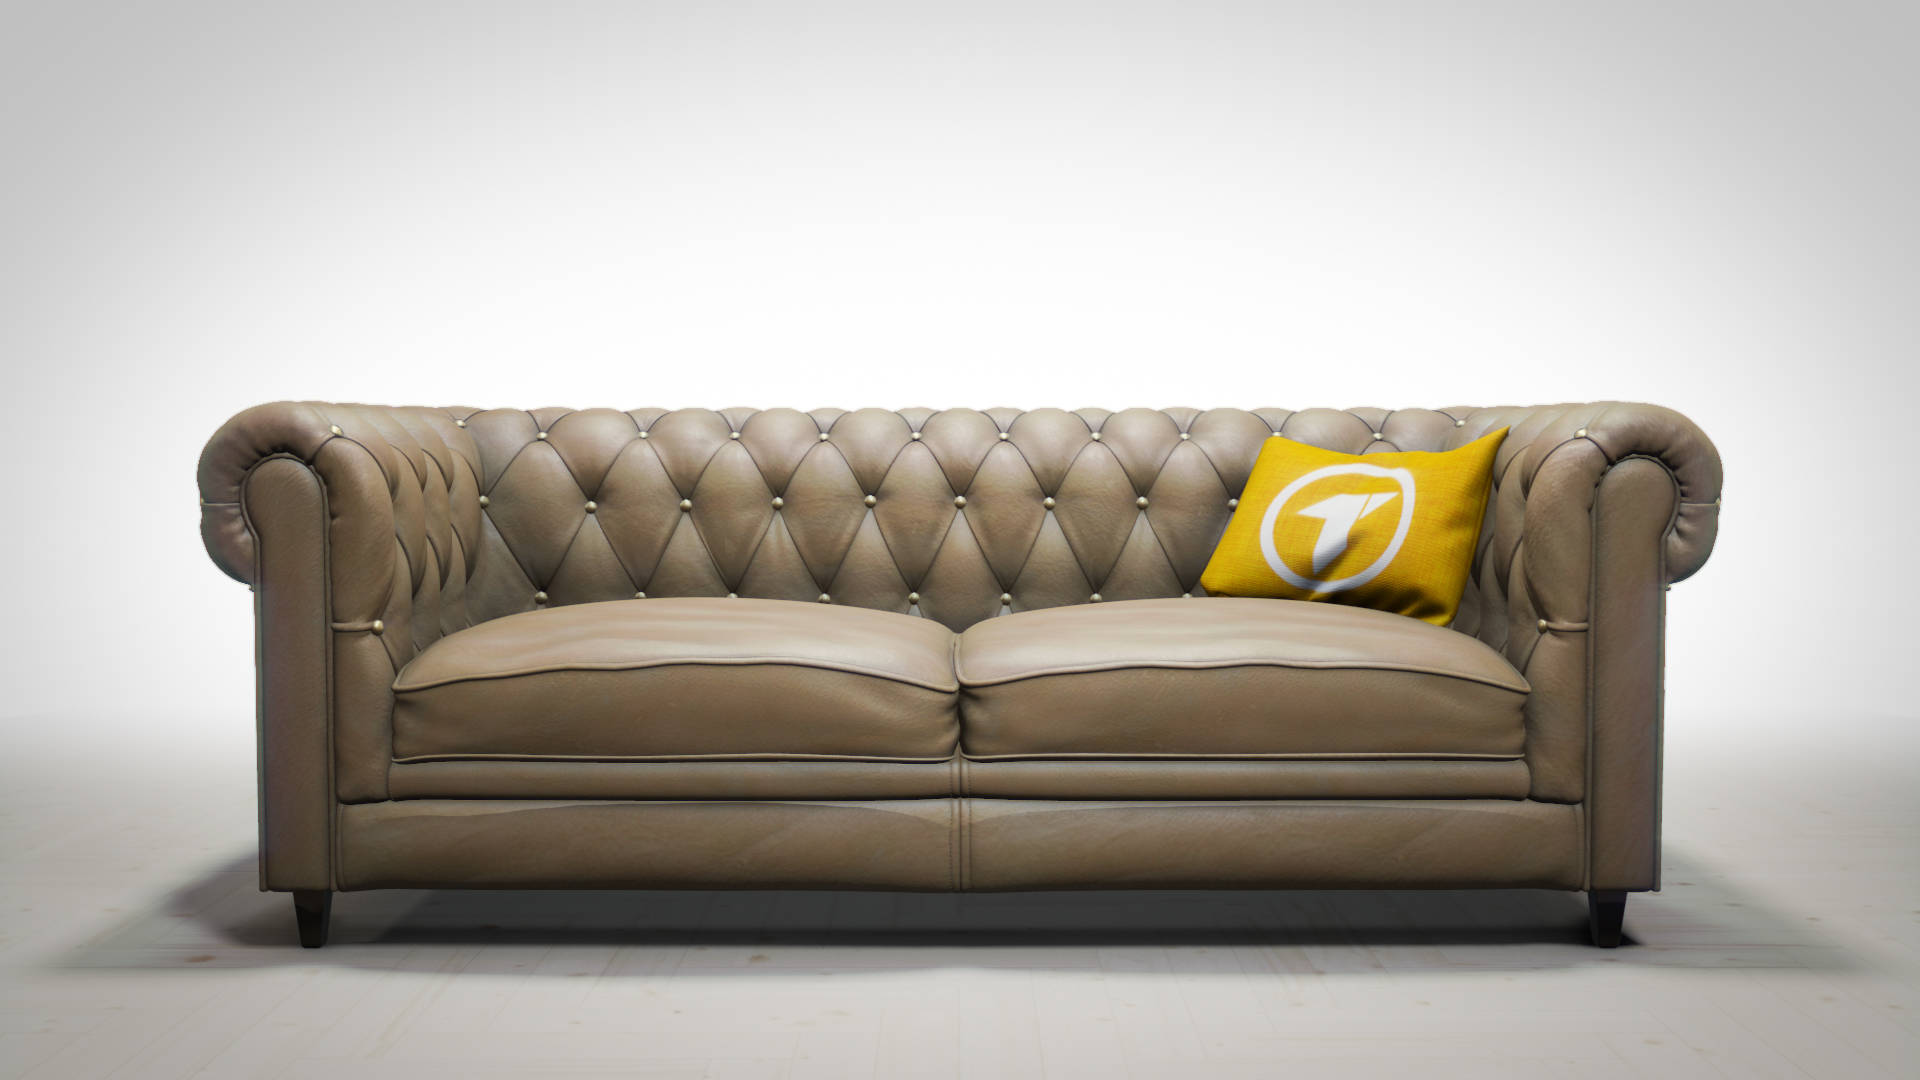 couch-from-urender-alpha.jpg